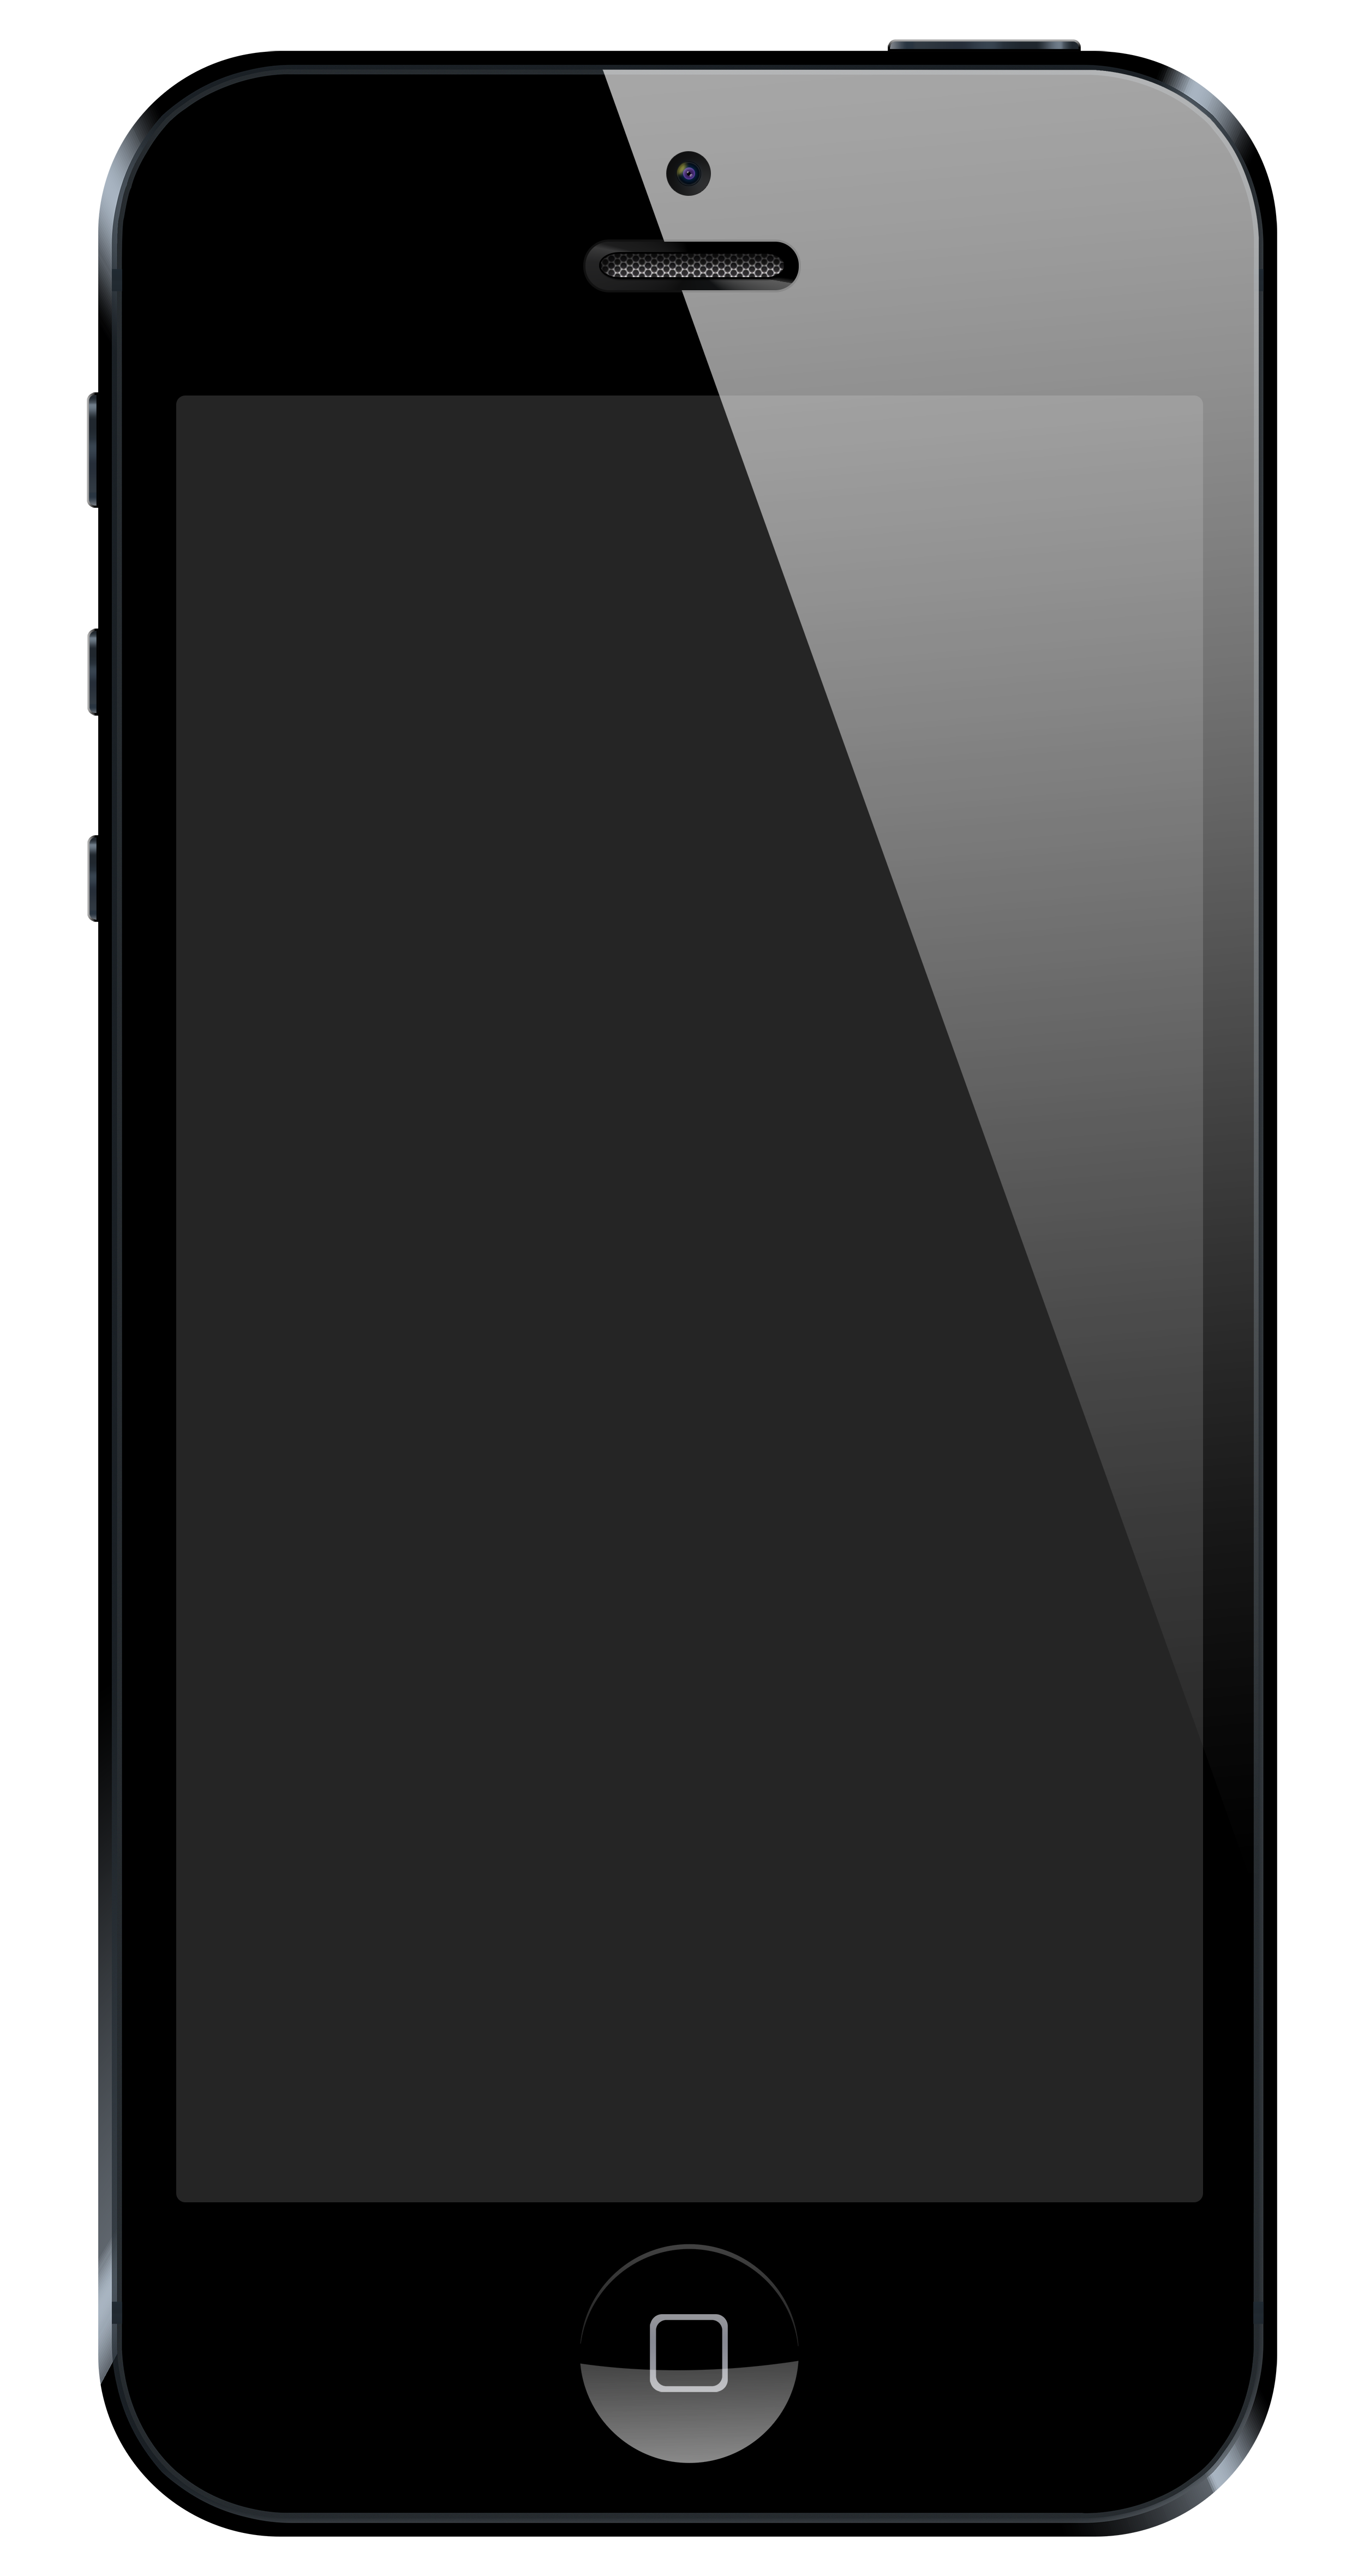 Iphone 5 Wikipedia